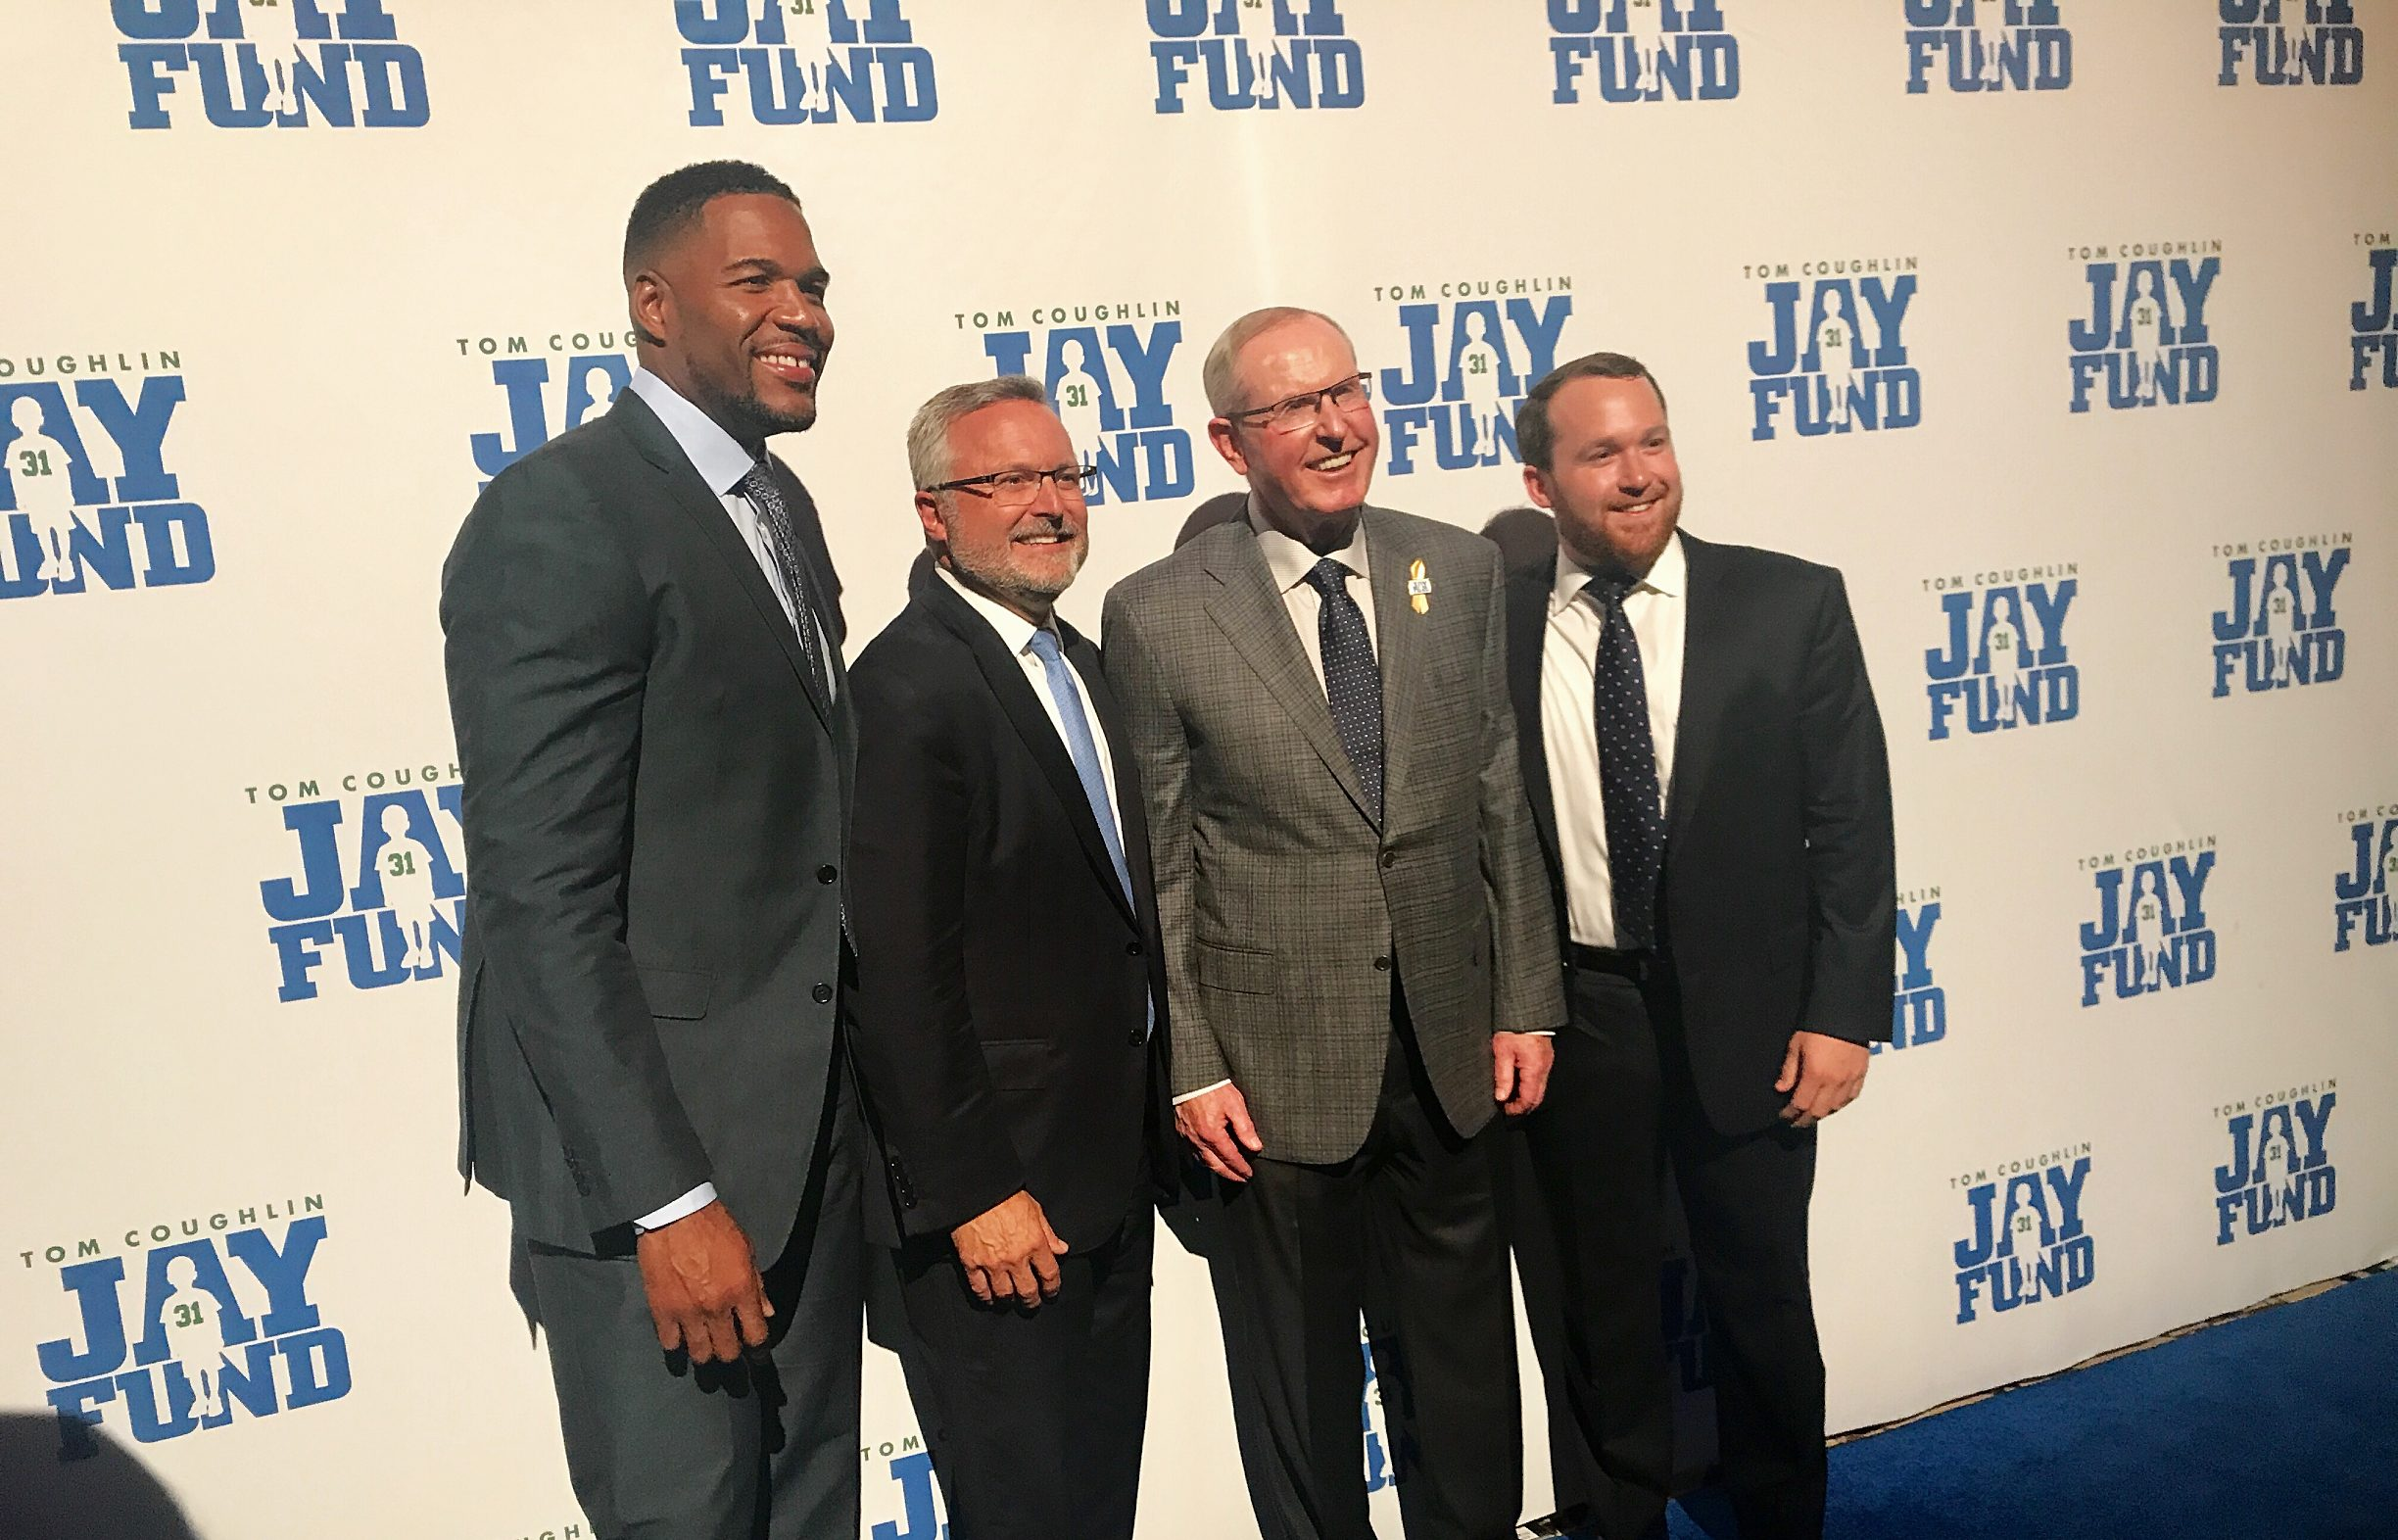 Tom Coughlin Jay Fund Foundation 13th Annual Champions for Children Gala